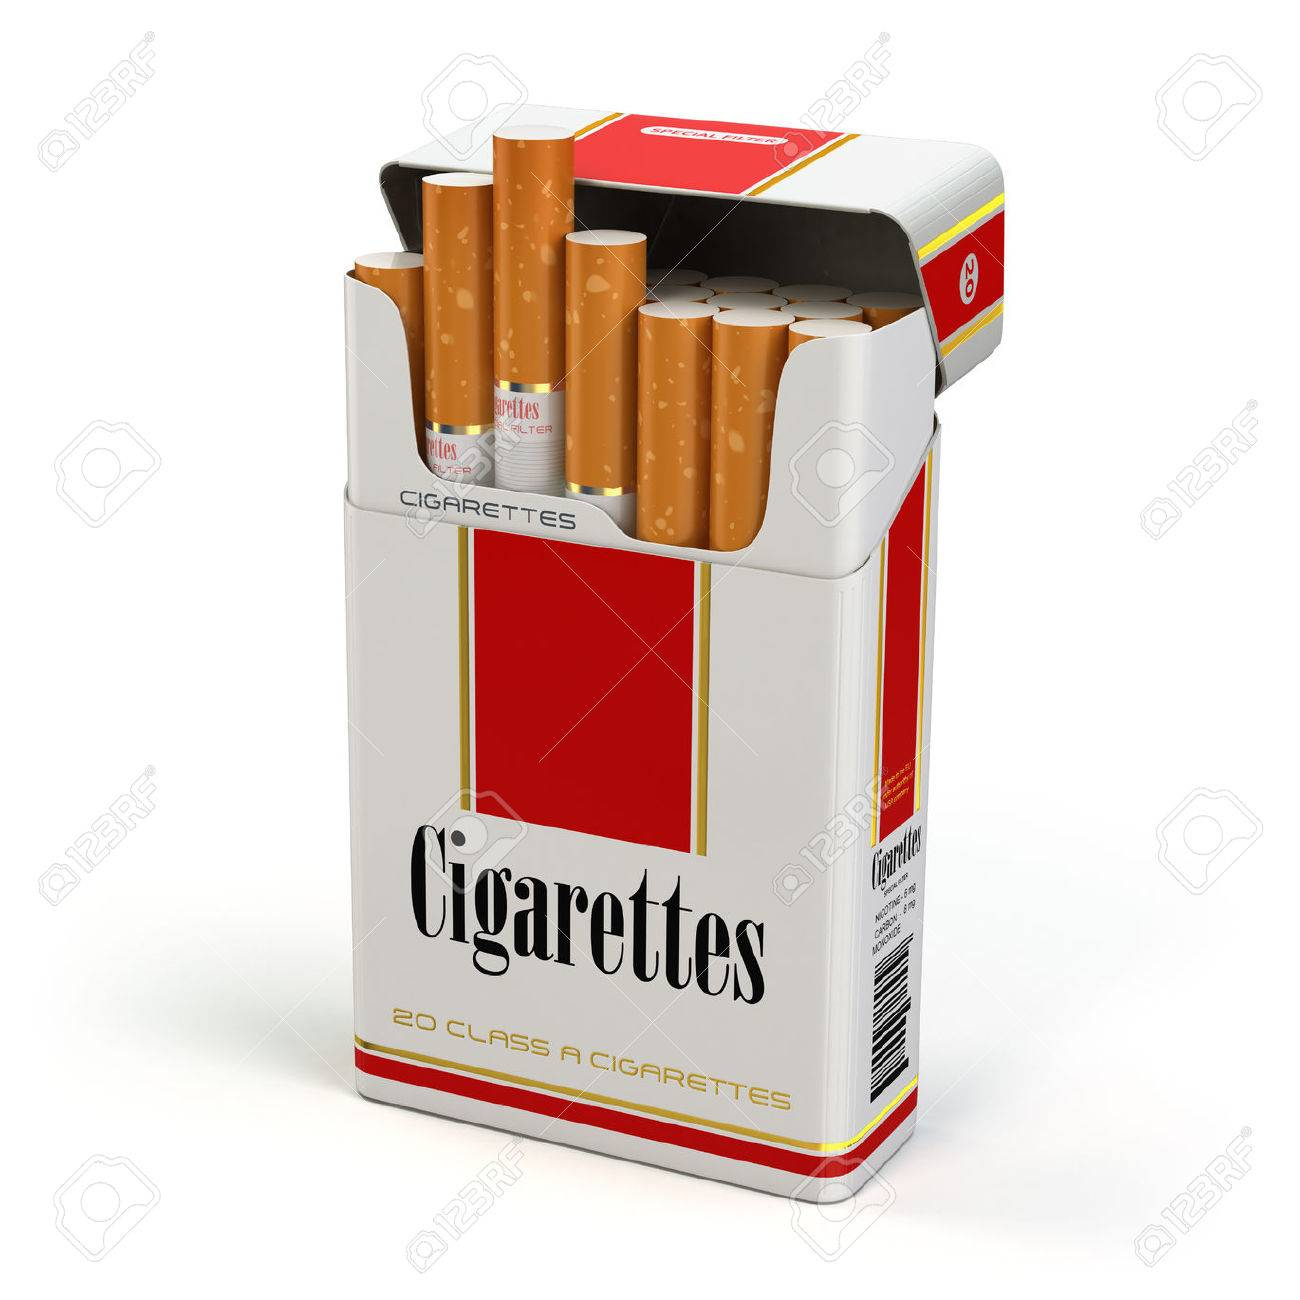 Cigarette pack on white isolated background. 3d - 50983588